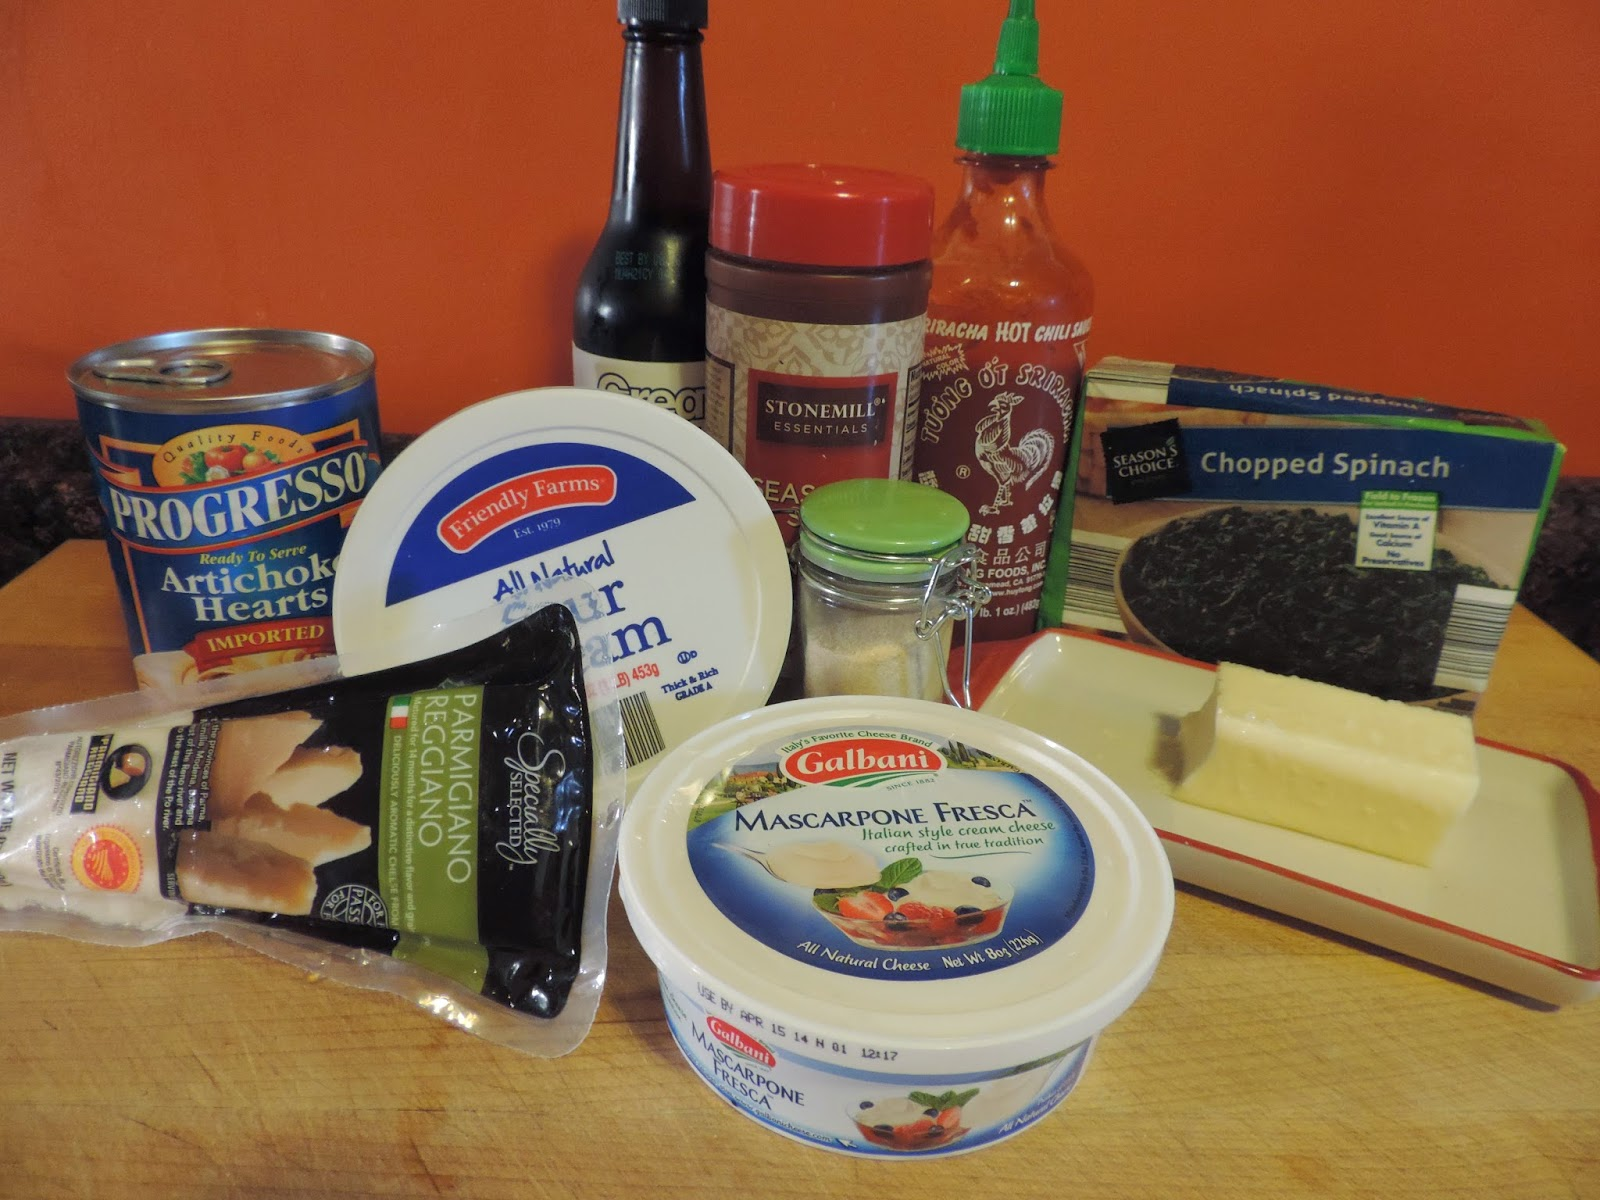 The ingredients needed to make the Baked Spinach Artichoke Dip.